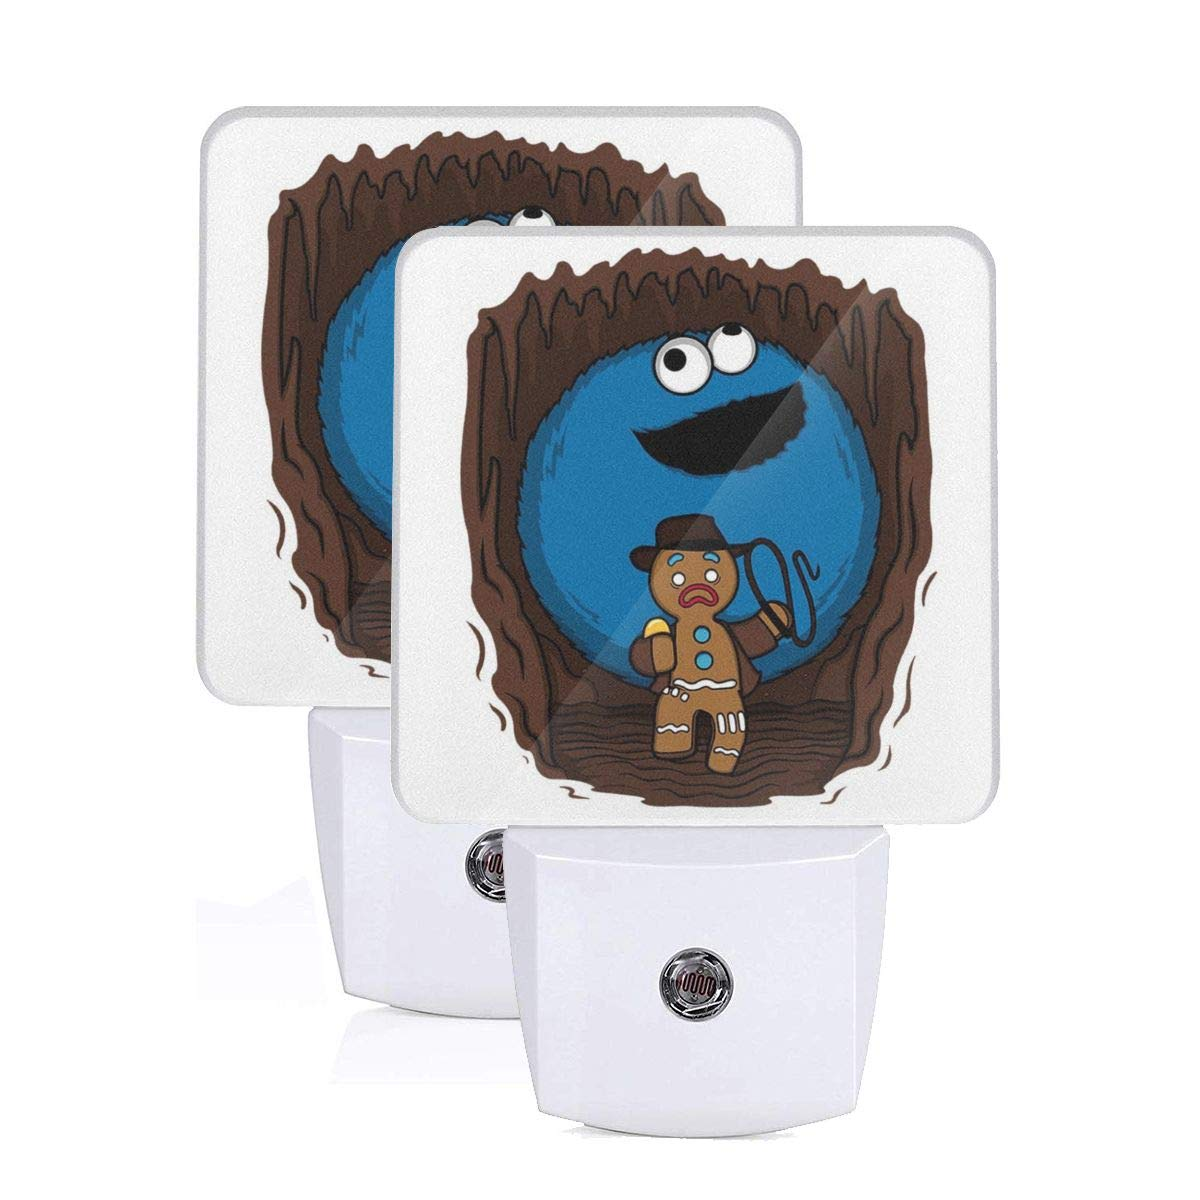 Indiana Jones Cookie Monster Gingerbread Man Mix Plug-in Led Night Light with Auto Dusk to Dawn Sensor,Bedroom, Kids Room, Kitchen, Stairway, Adjustable Brightness 2 Pack